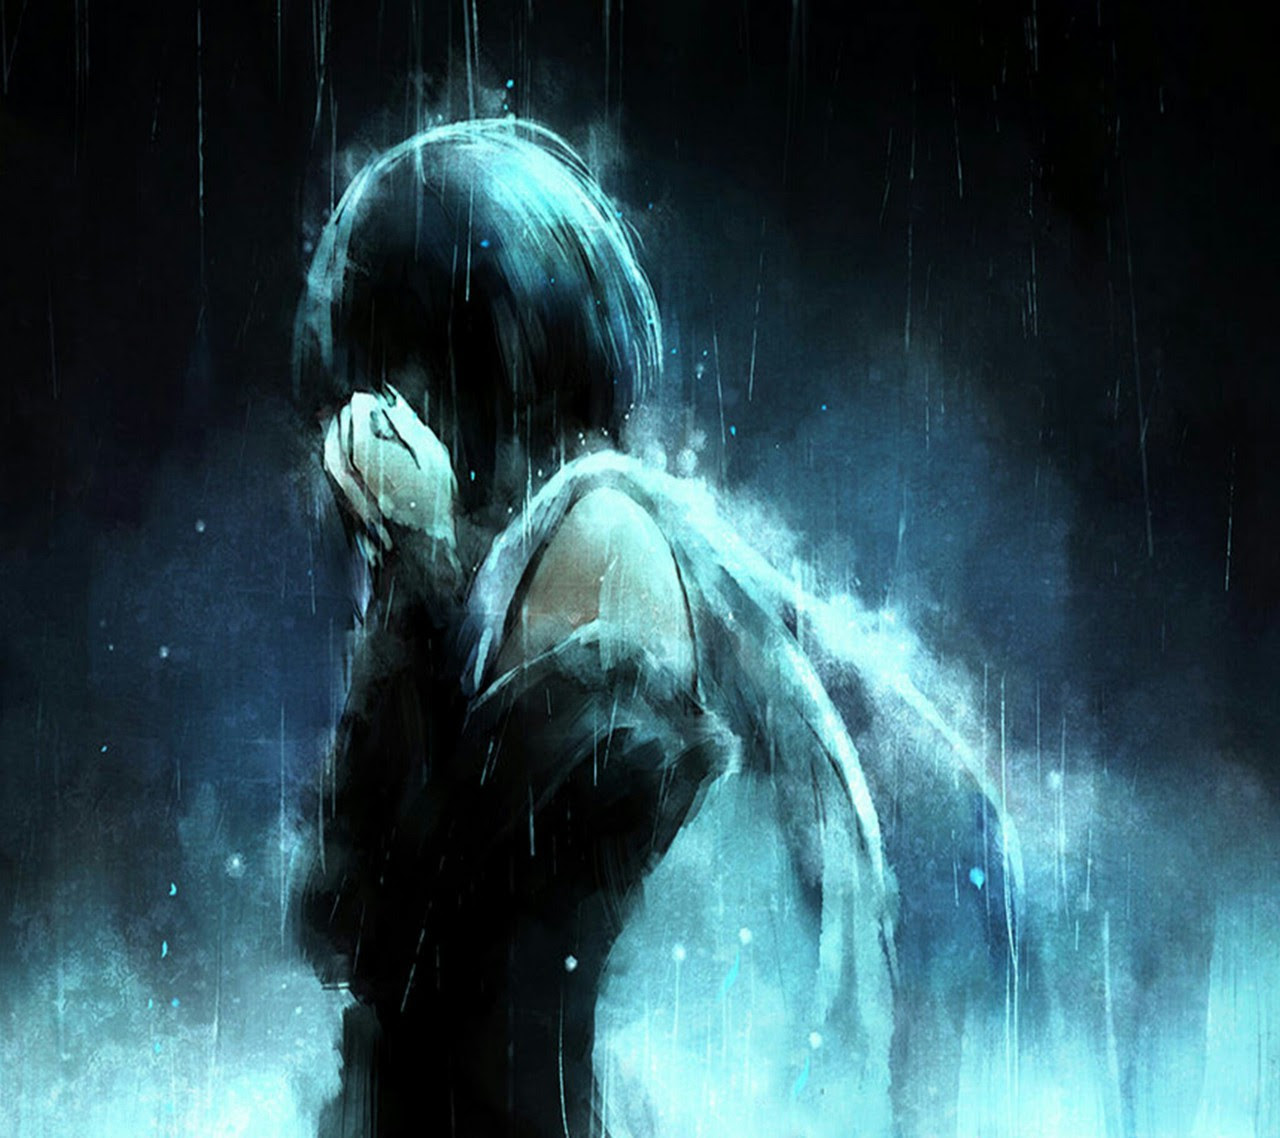 Alone Anime Girl Crying In The Rain - Anime Wallpapers